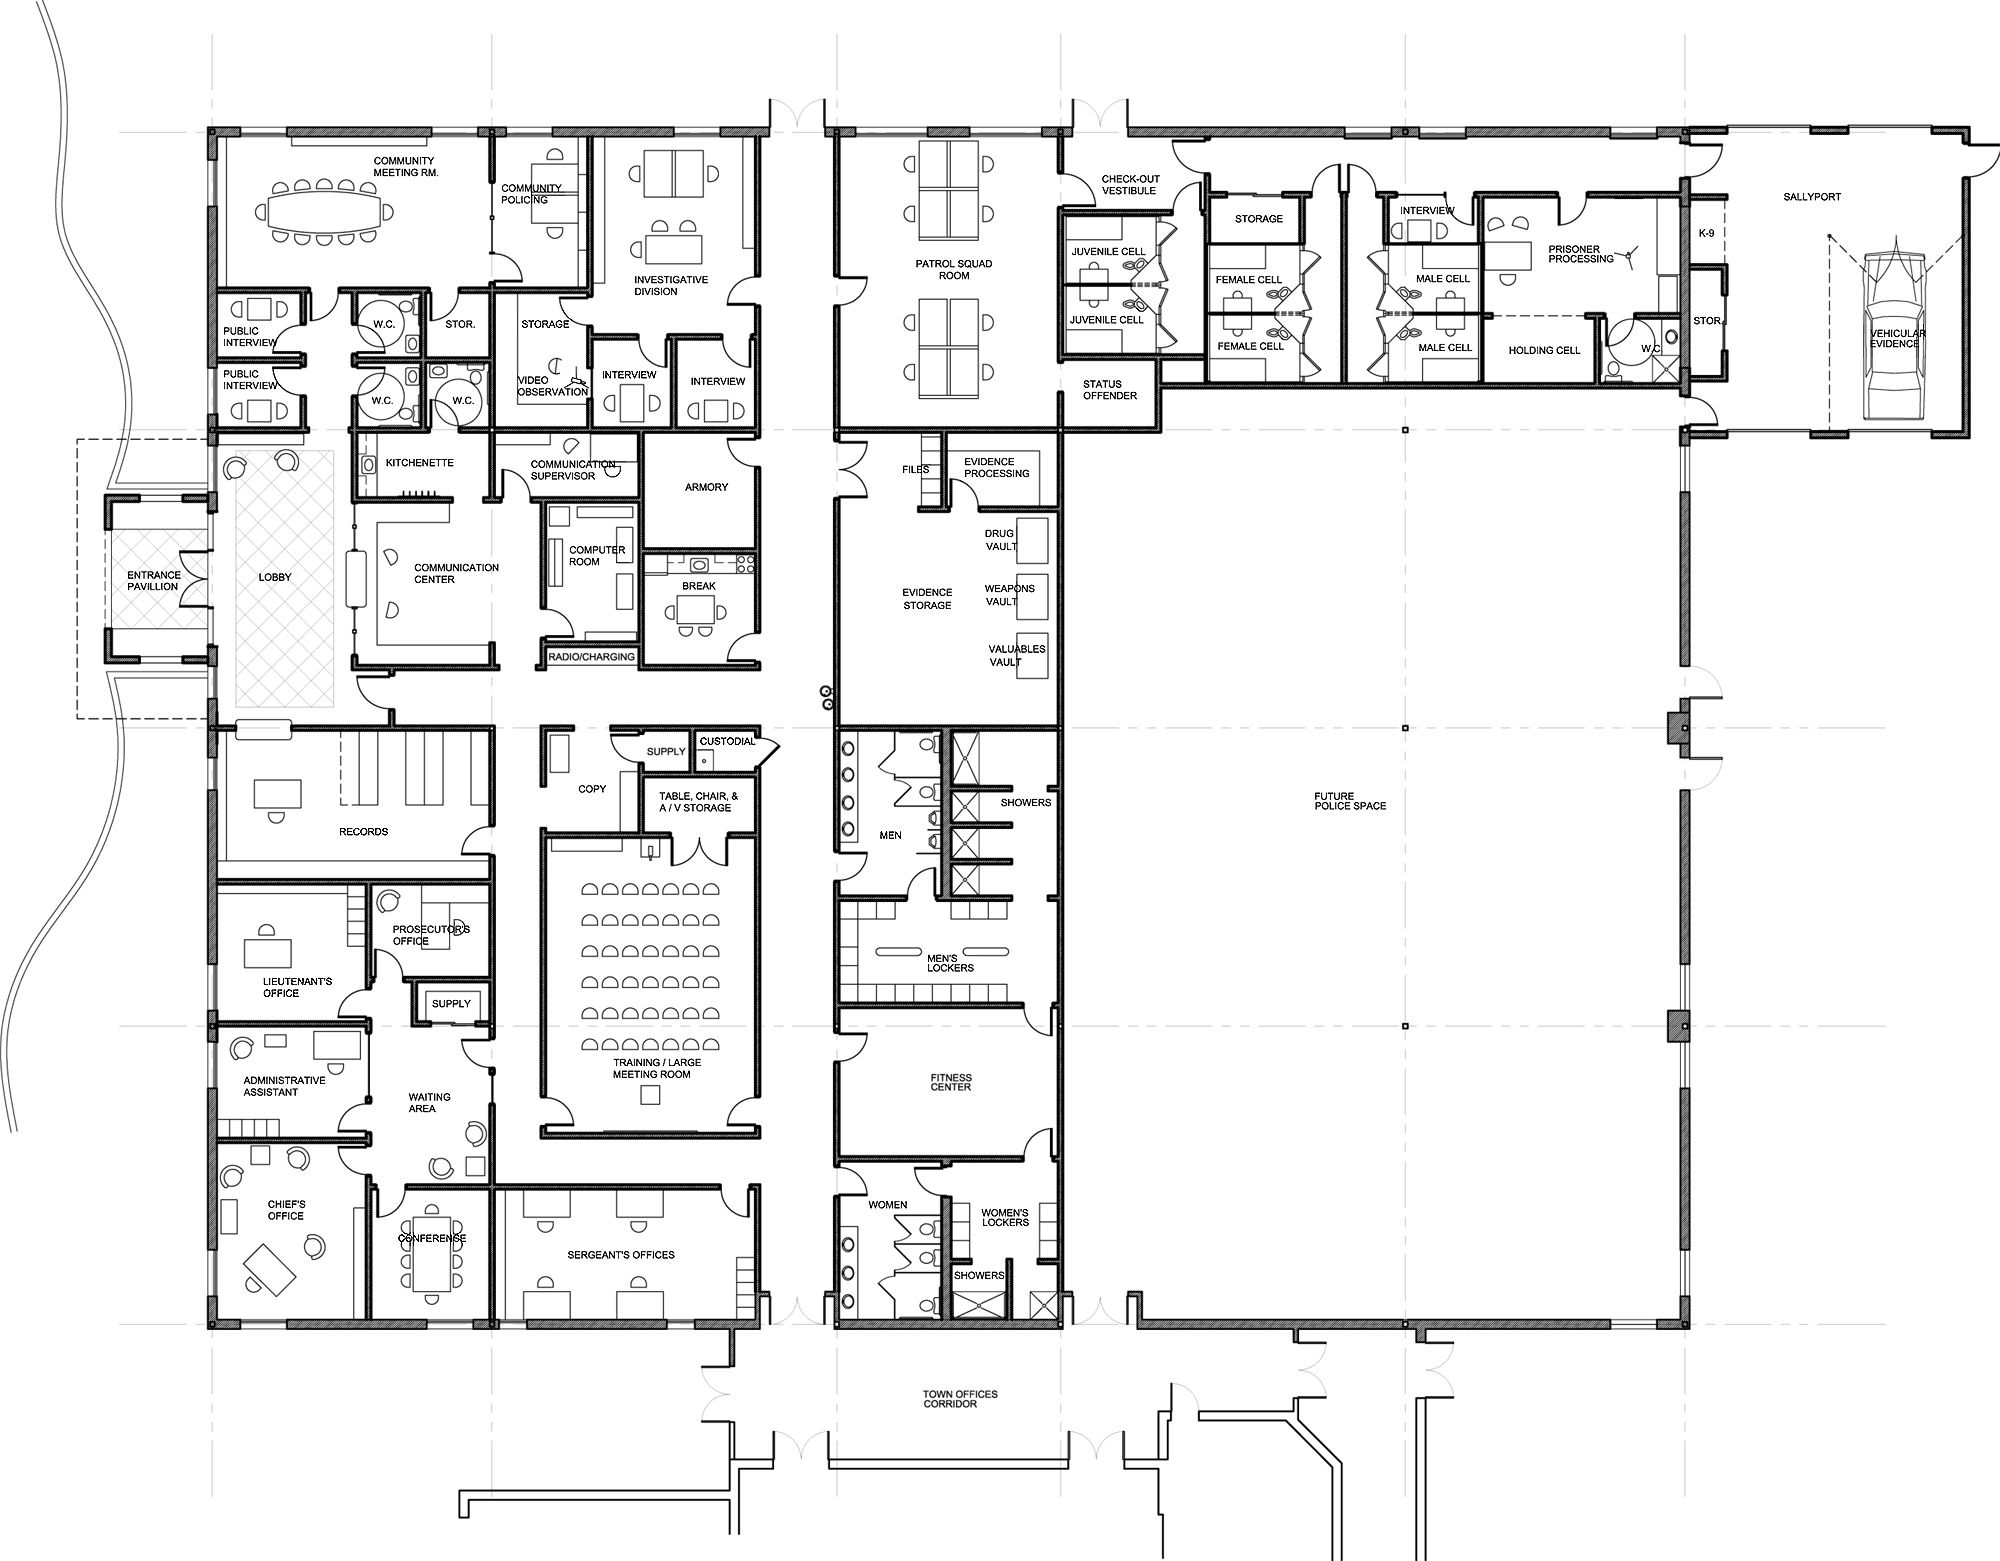 Astonishing floor plans blueprints on floor with home Blueprint homes floor plans